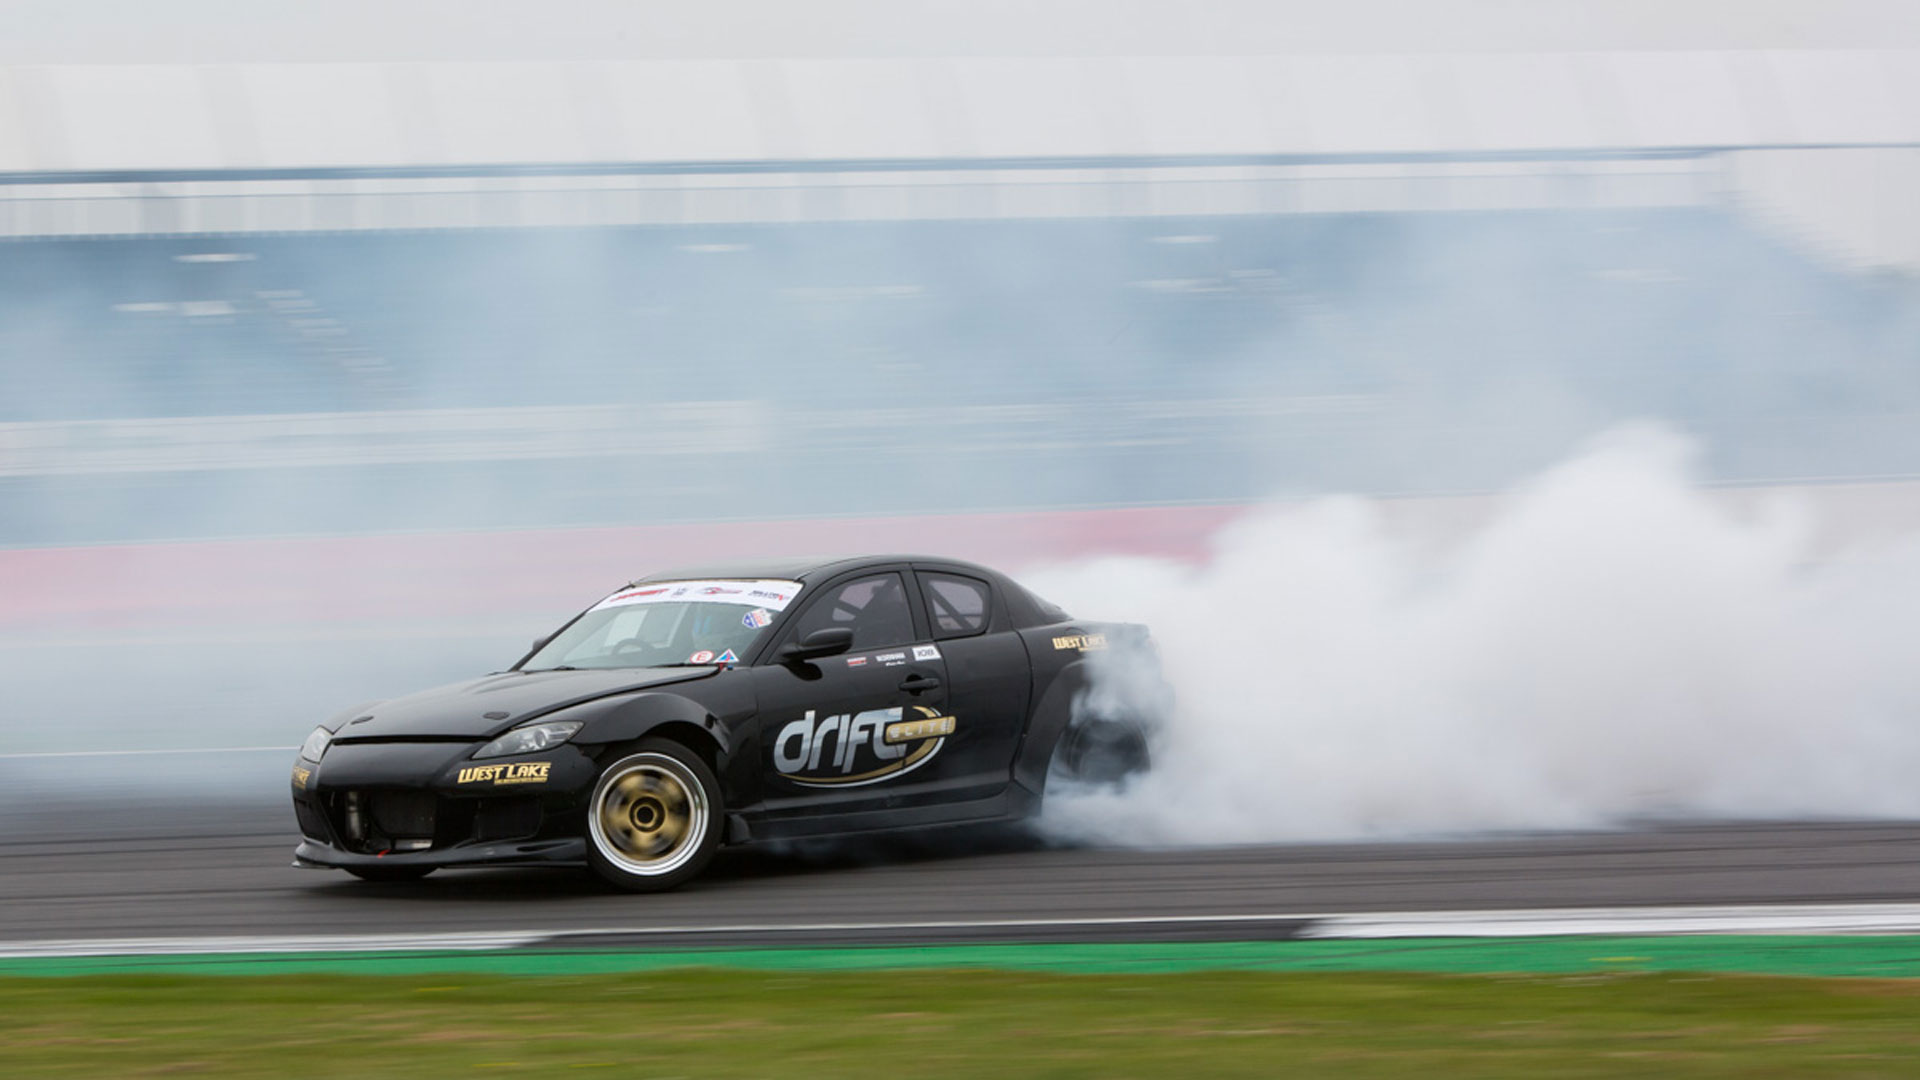 Japfest – 5 May and 13 July